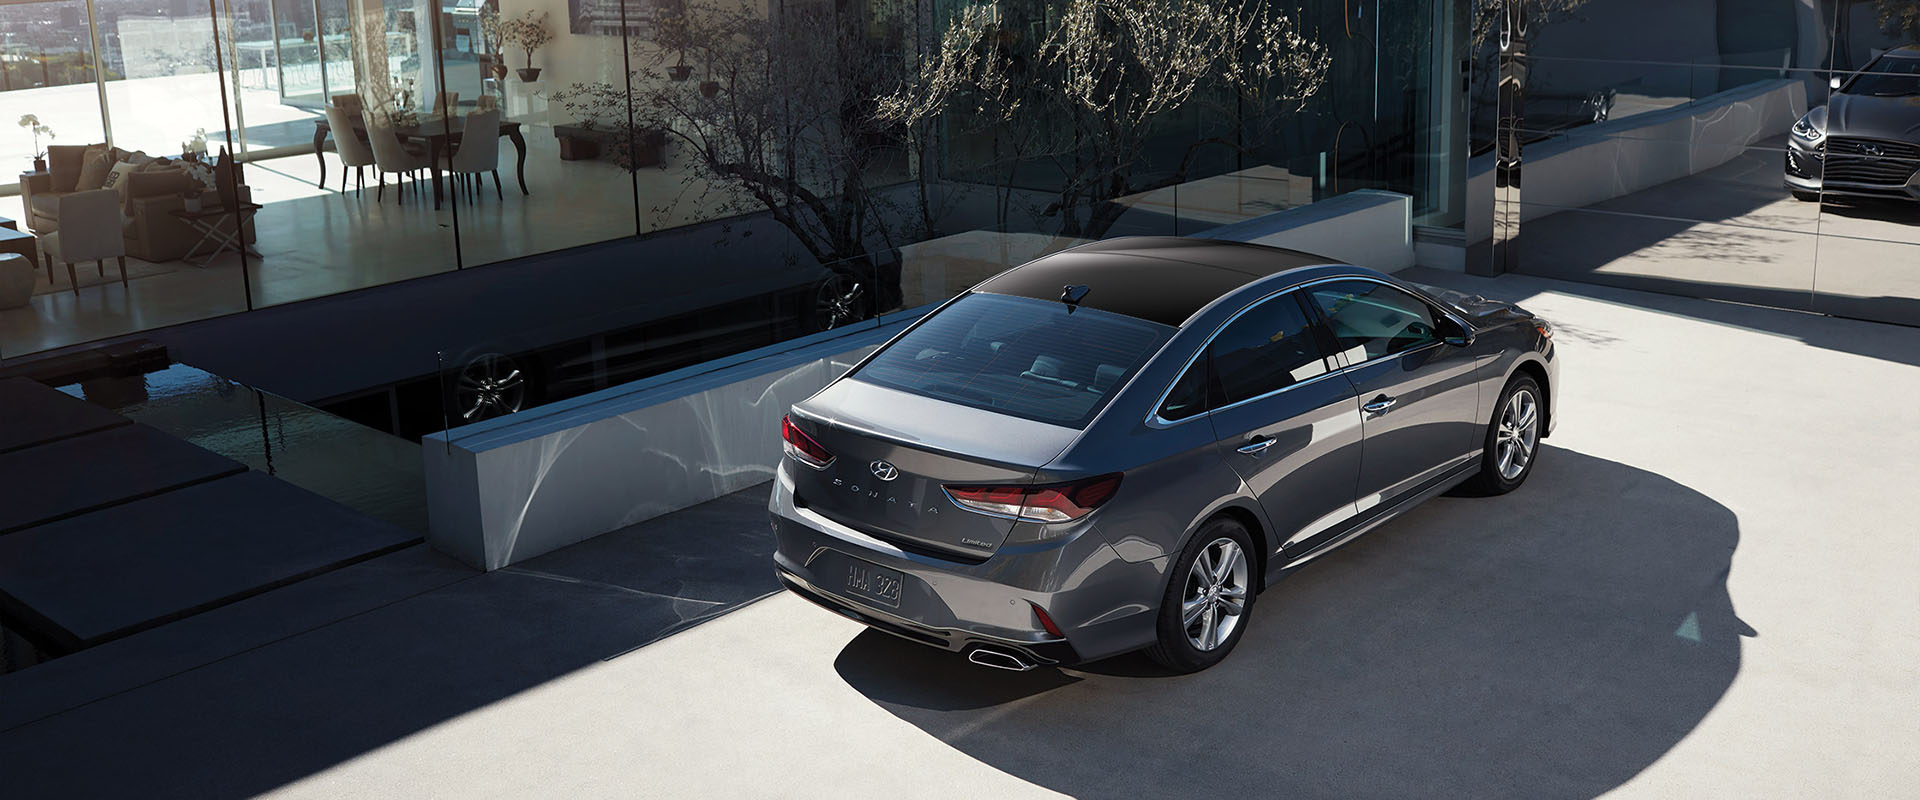 Check out the new 2019 Hyundai Sonata at Pathway Hyundai in Ottawa ON